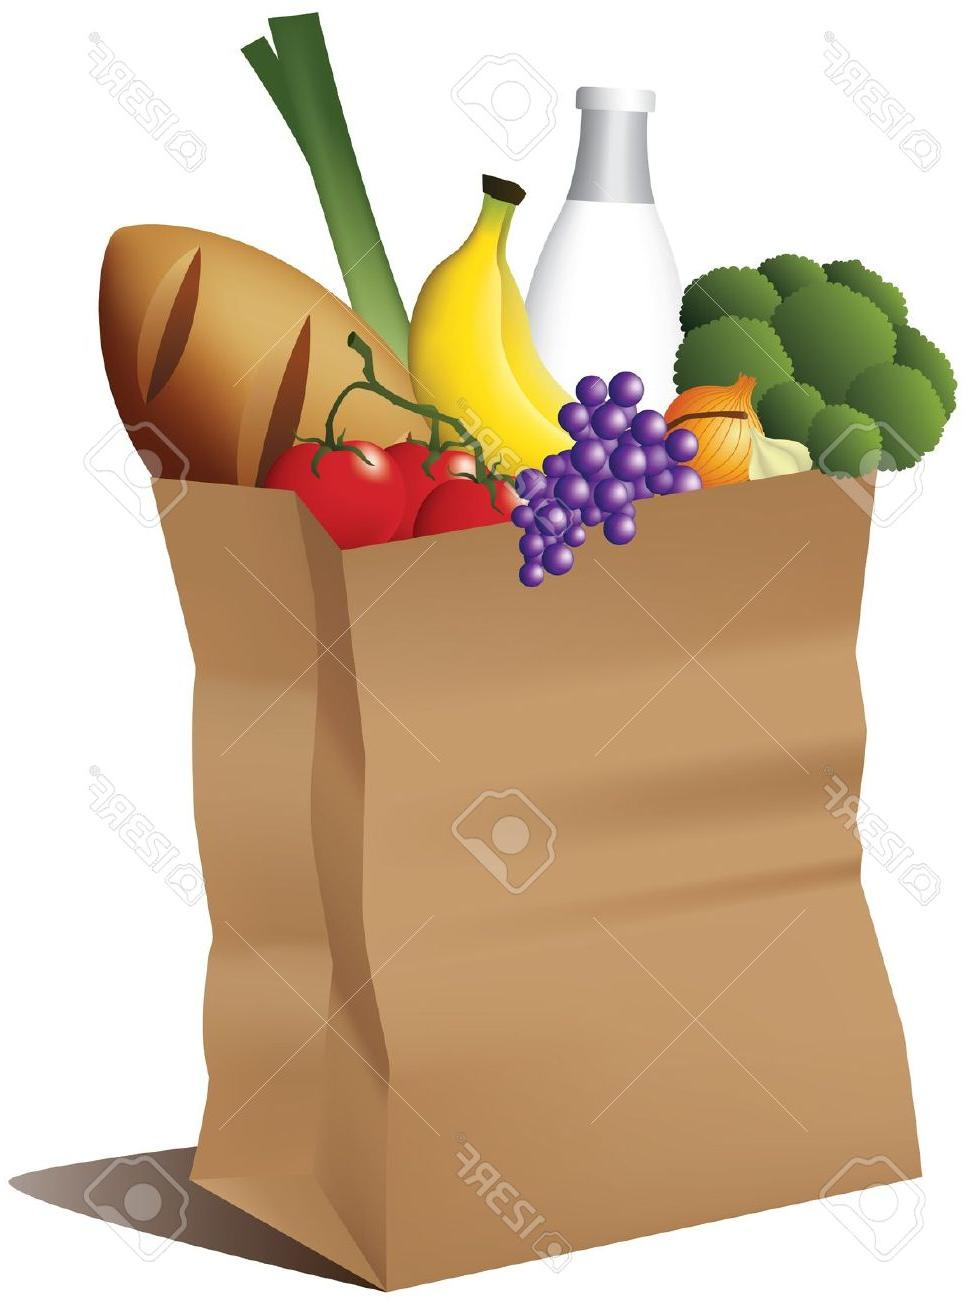 979x1300 Hd Groceries Bag Grocery Paper Clipart Images